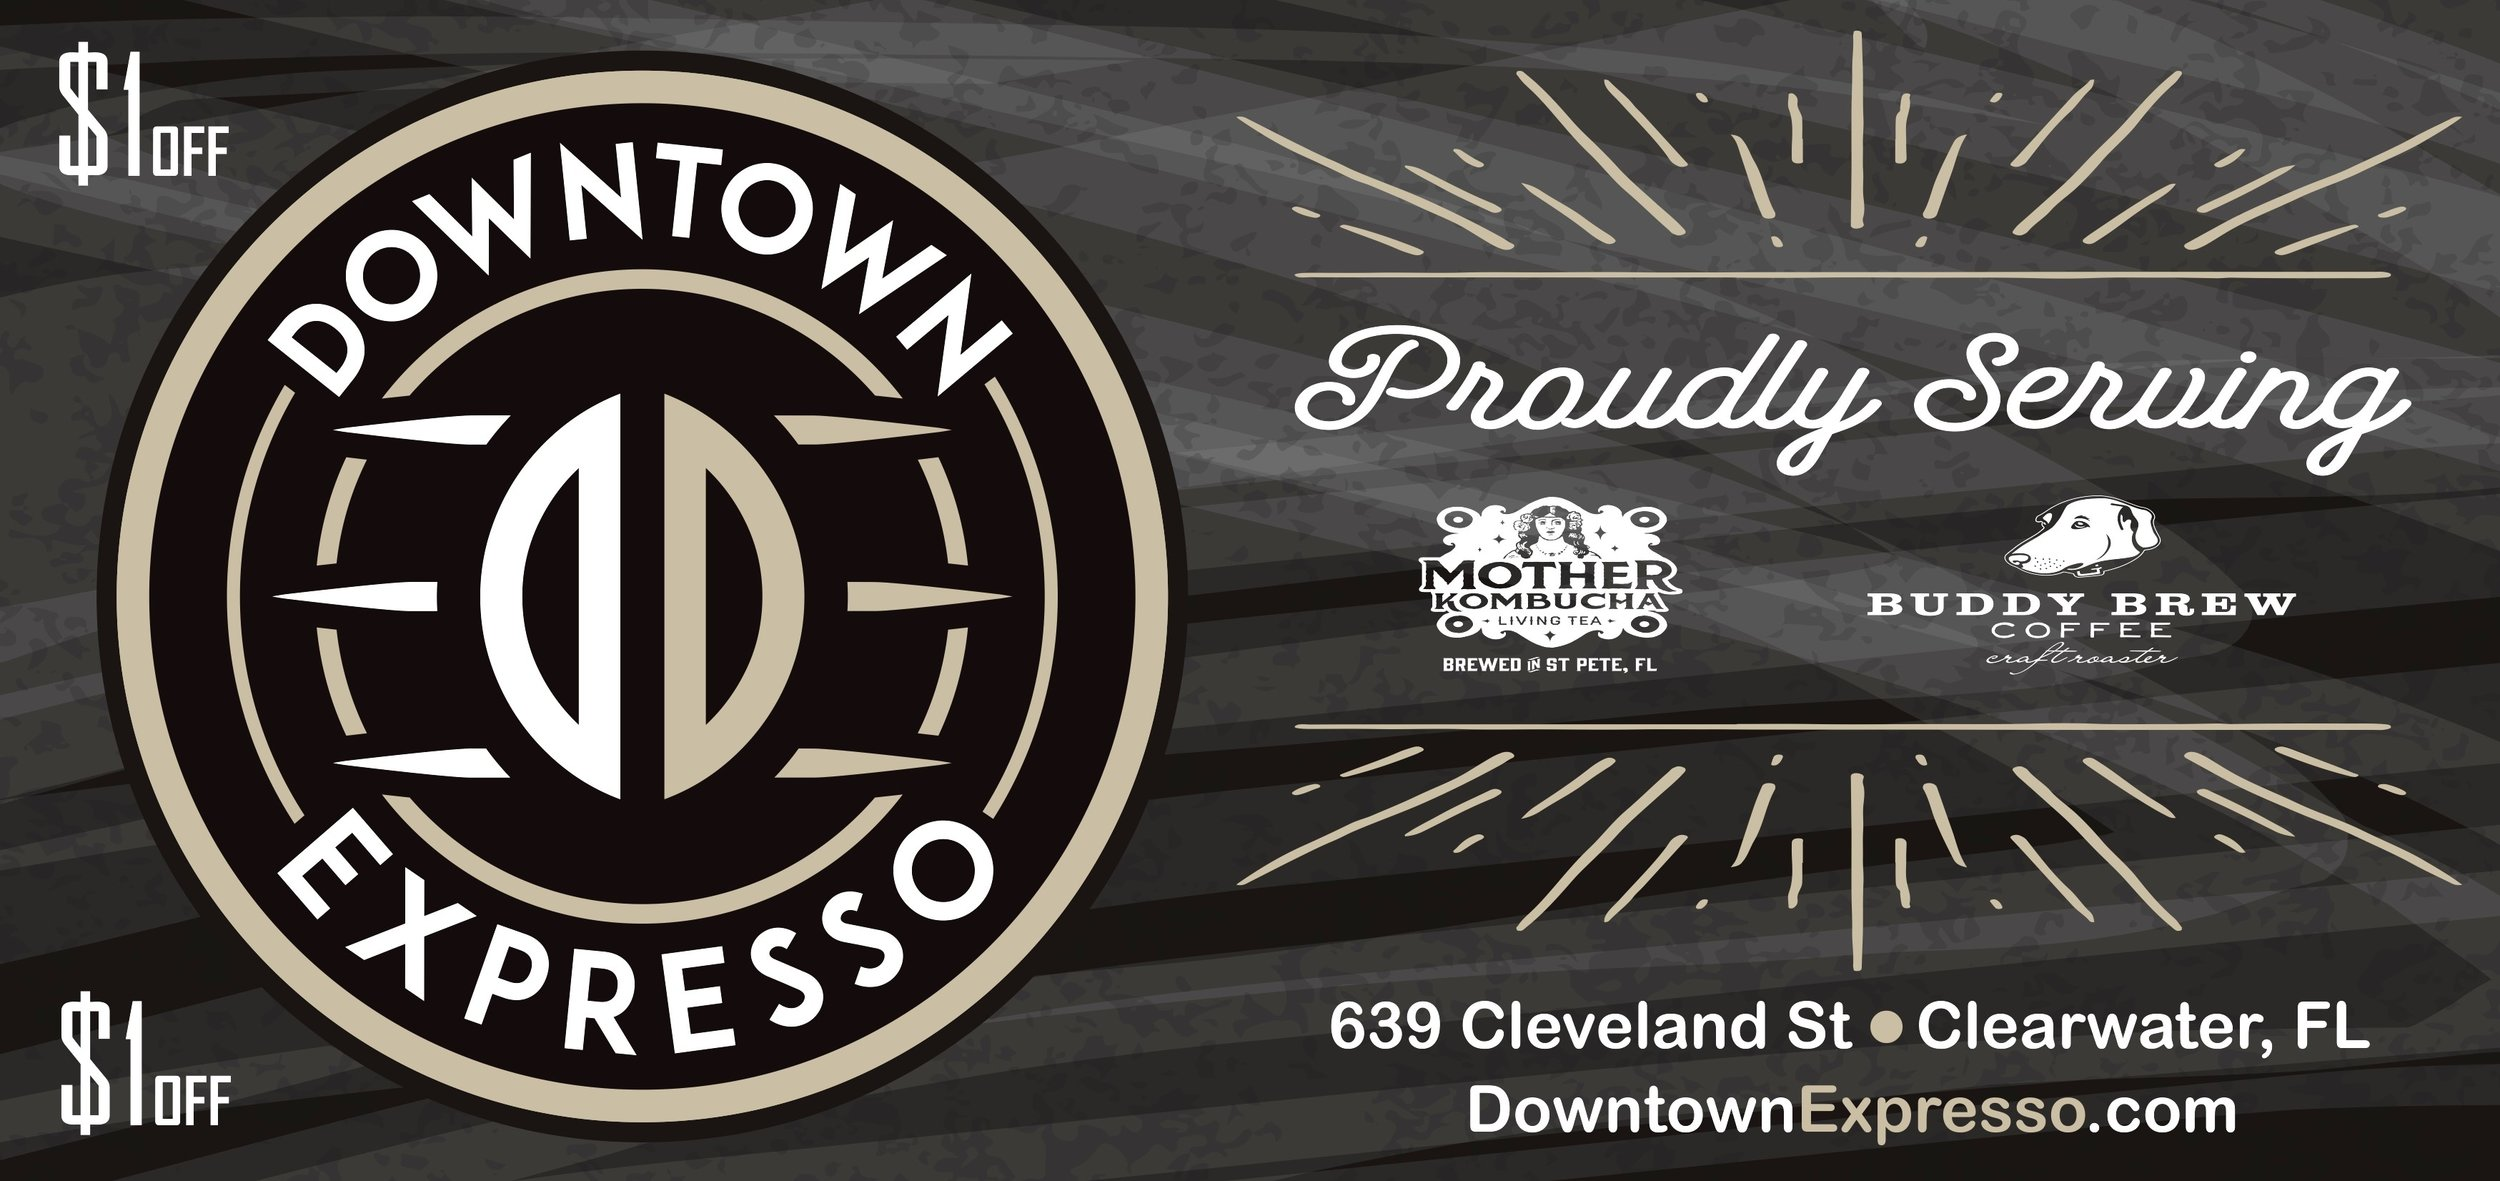 DOWNTOWN EXPRESSO - 639 Cleveland Street $1 OFF -   ONE PER VISIT - THIS OFFER CANNOT BE USED IN COMBINATION WITH A COUPON OR OTHER OFFERS.